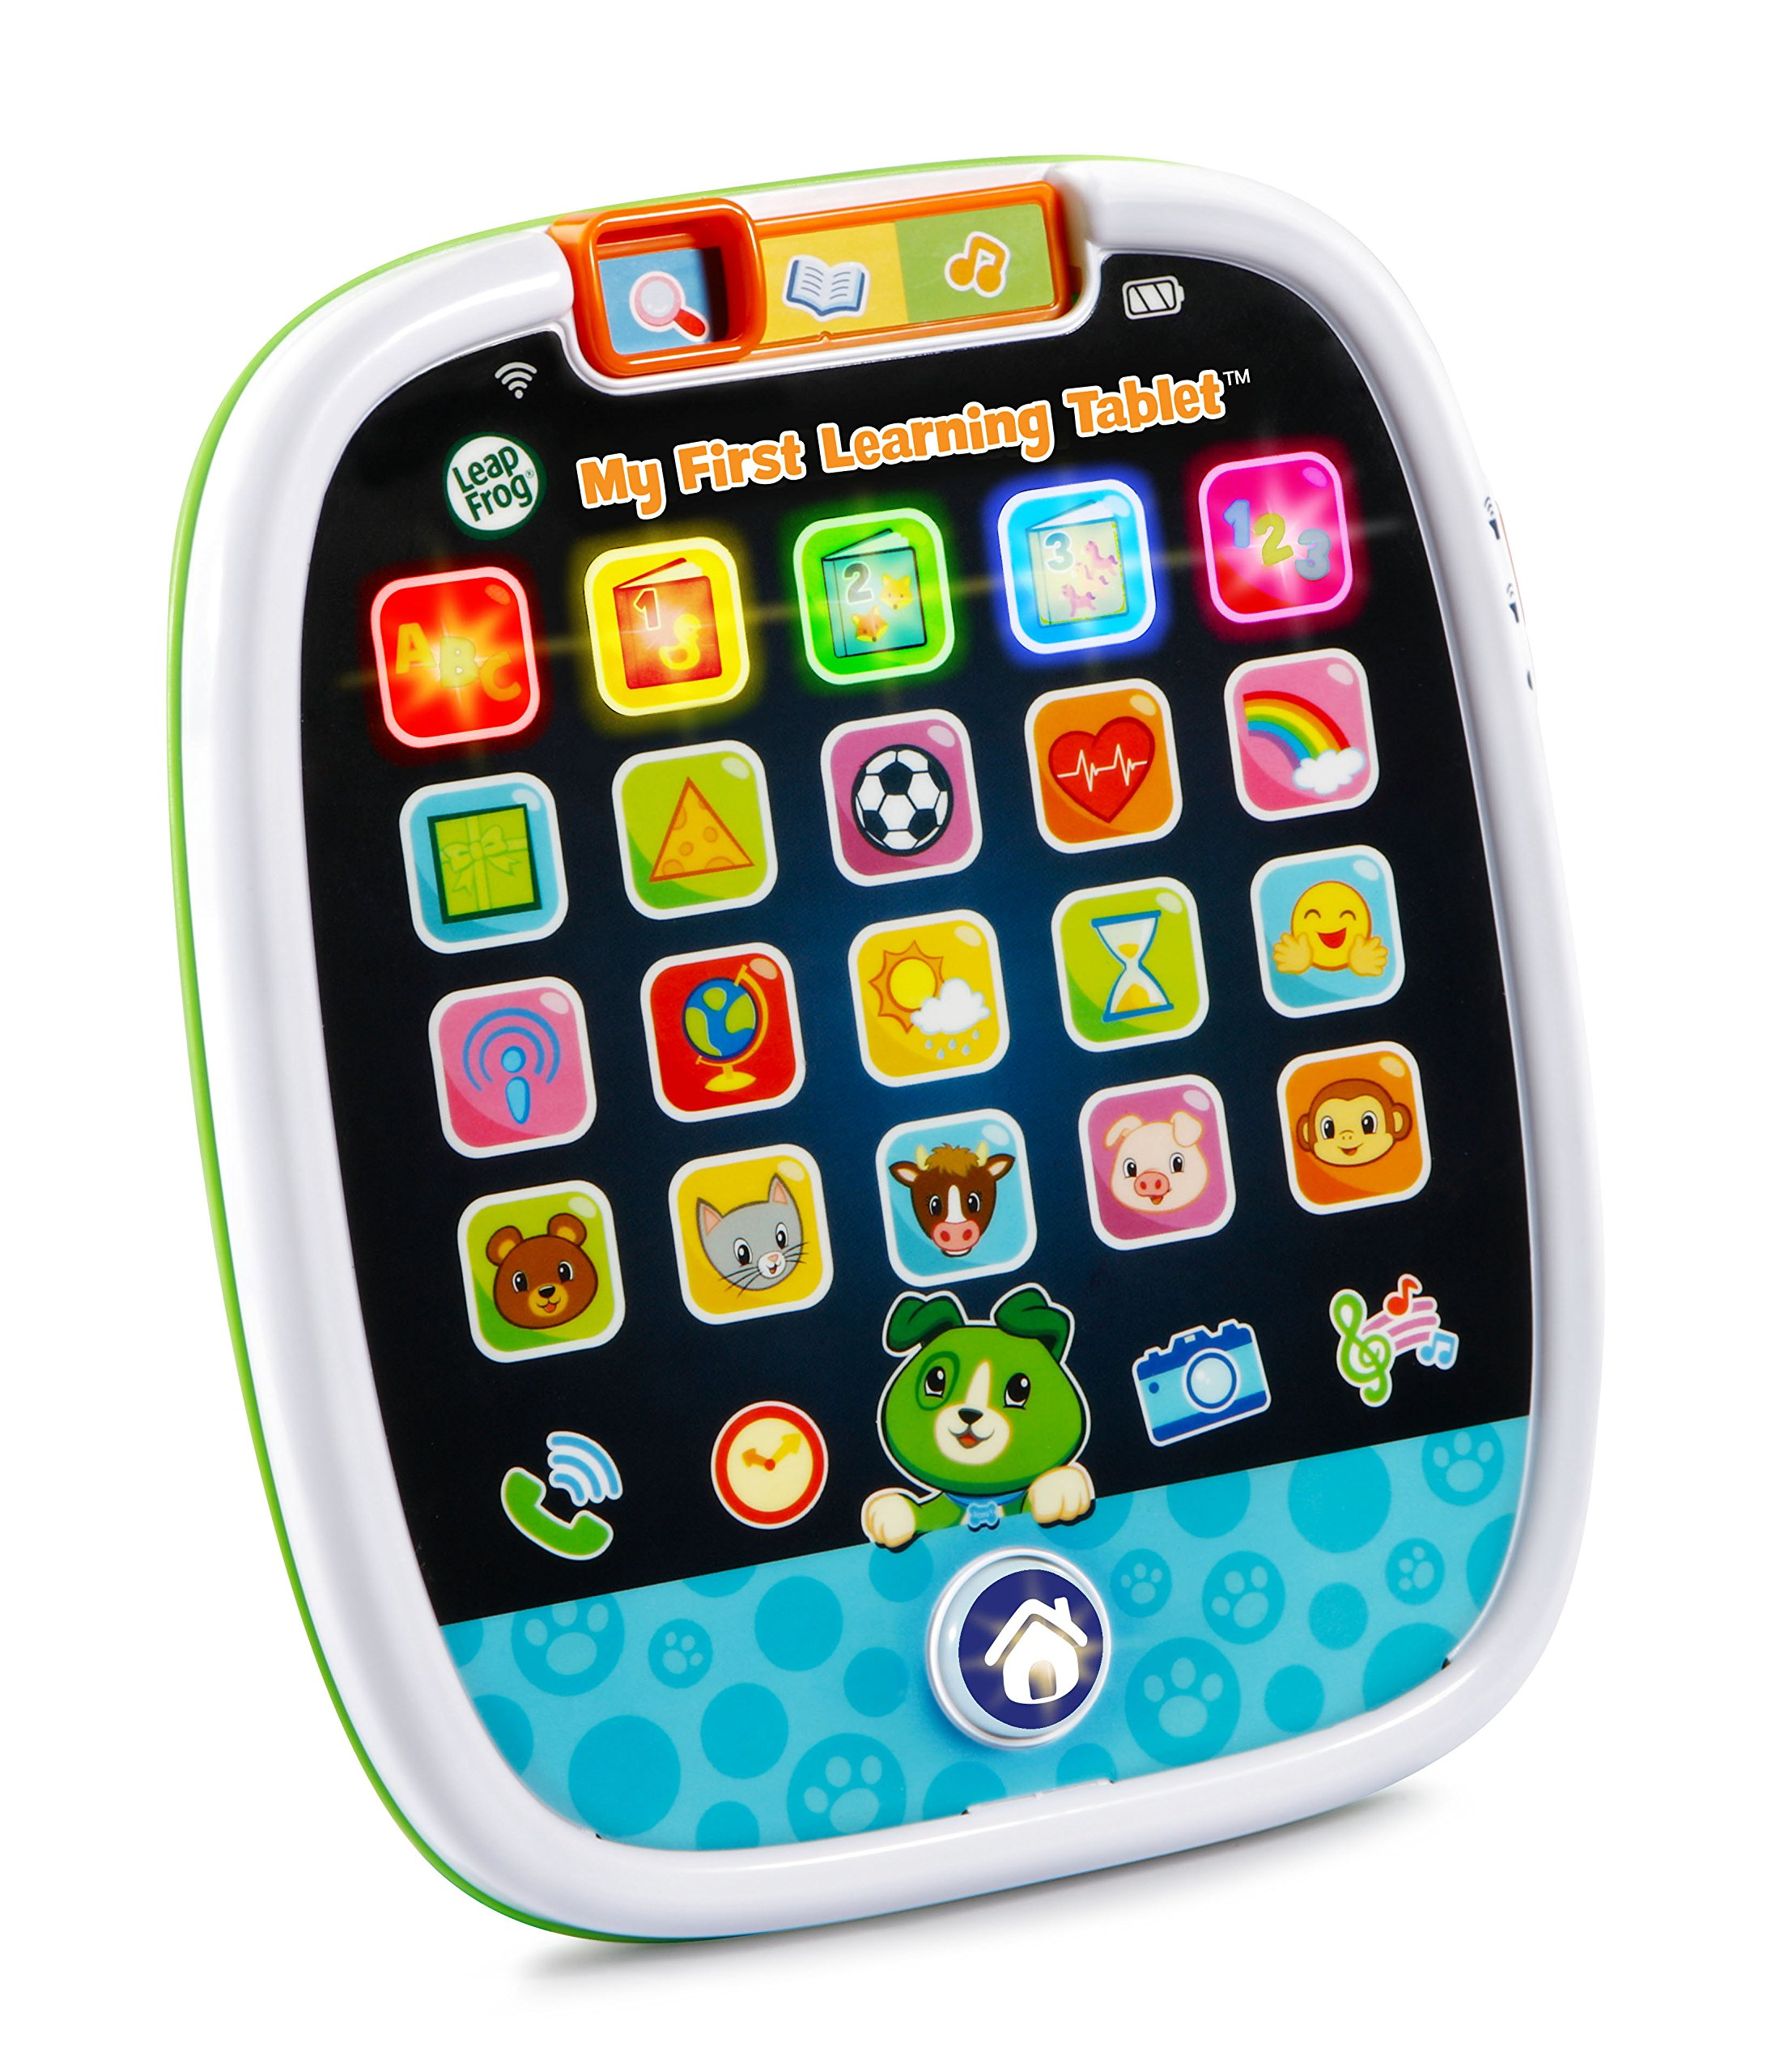 LeapFrog My First Learning Tablet, Black by LeapFrog (Image #2)